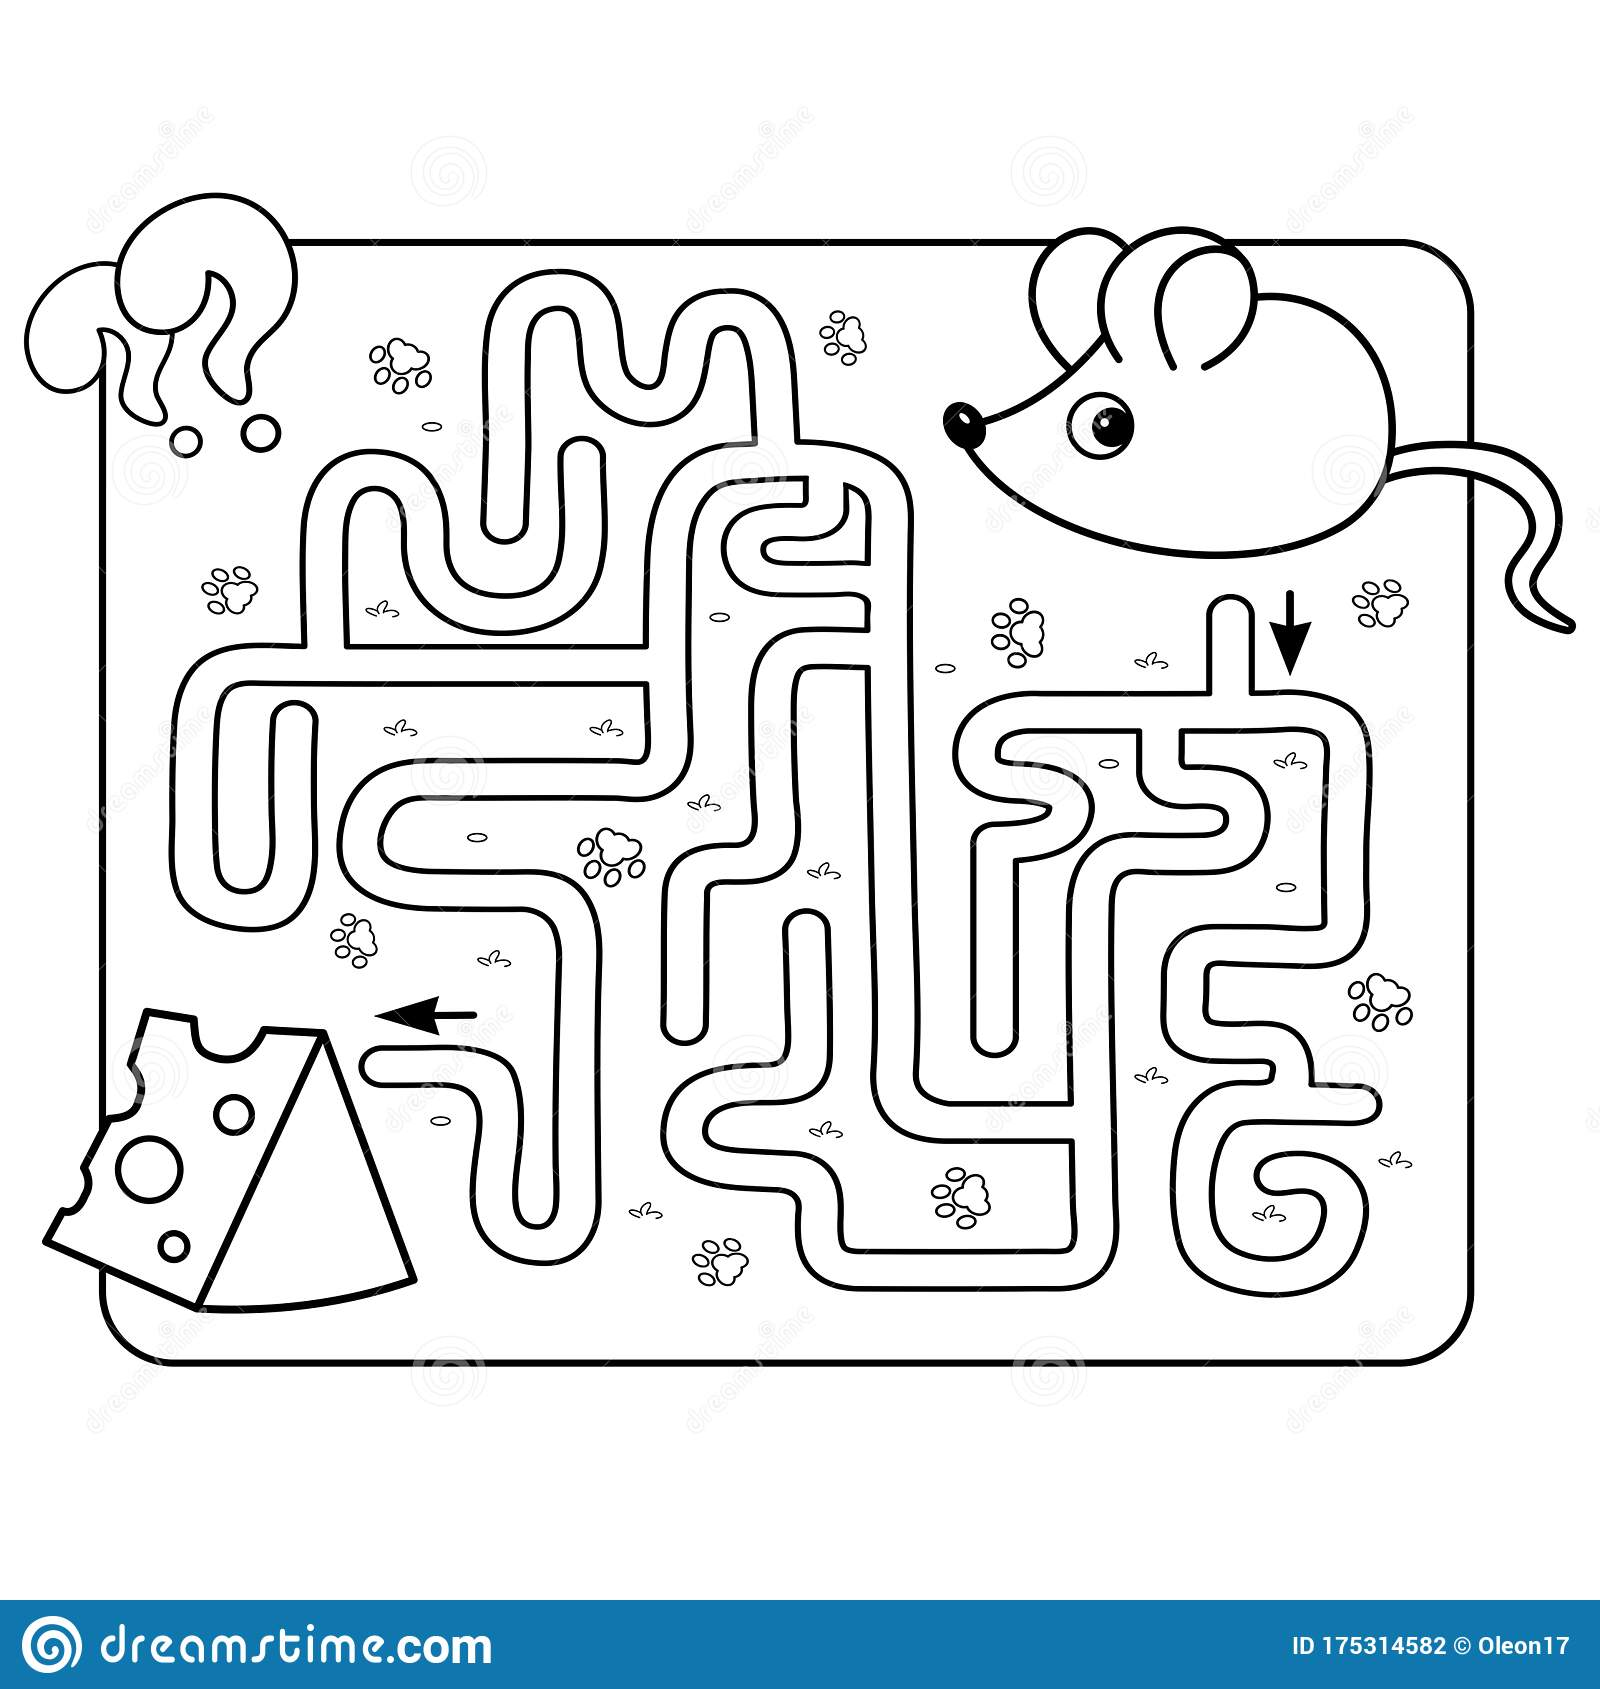 Maze Or Labyrinth Game For Preschool Children Puzzle